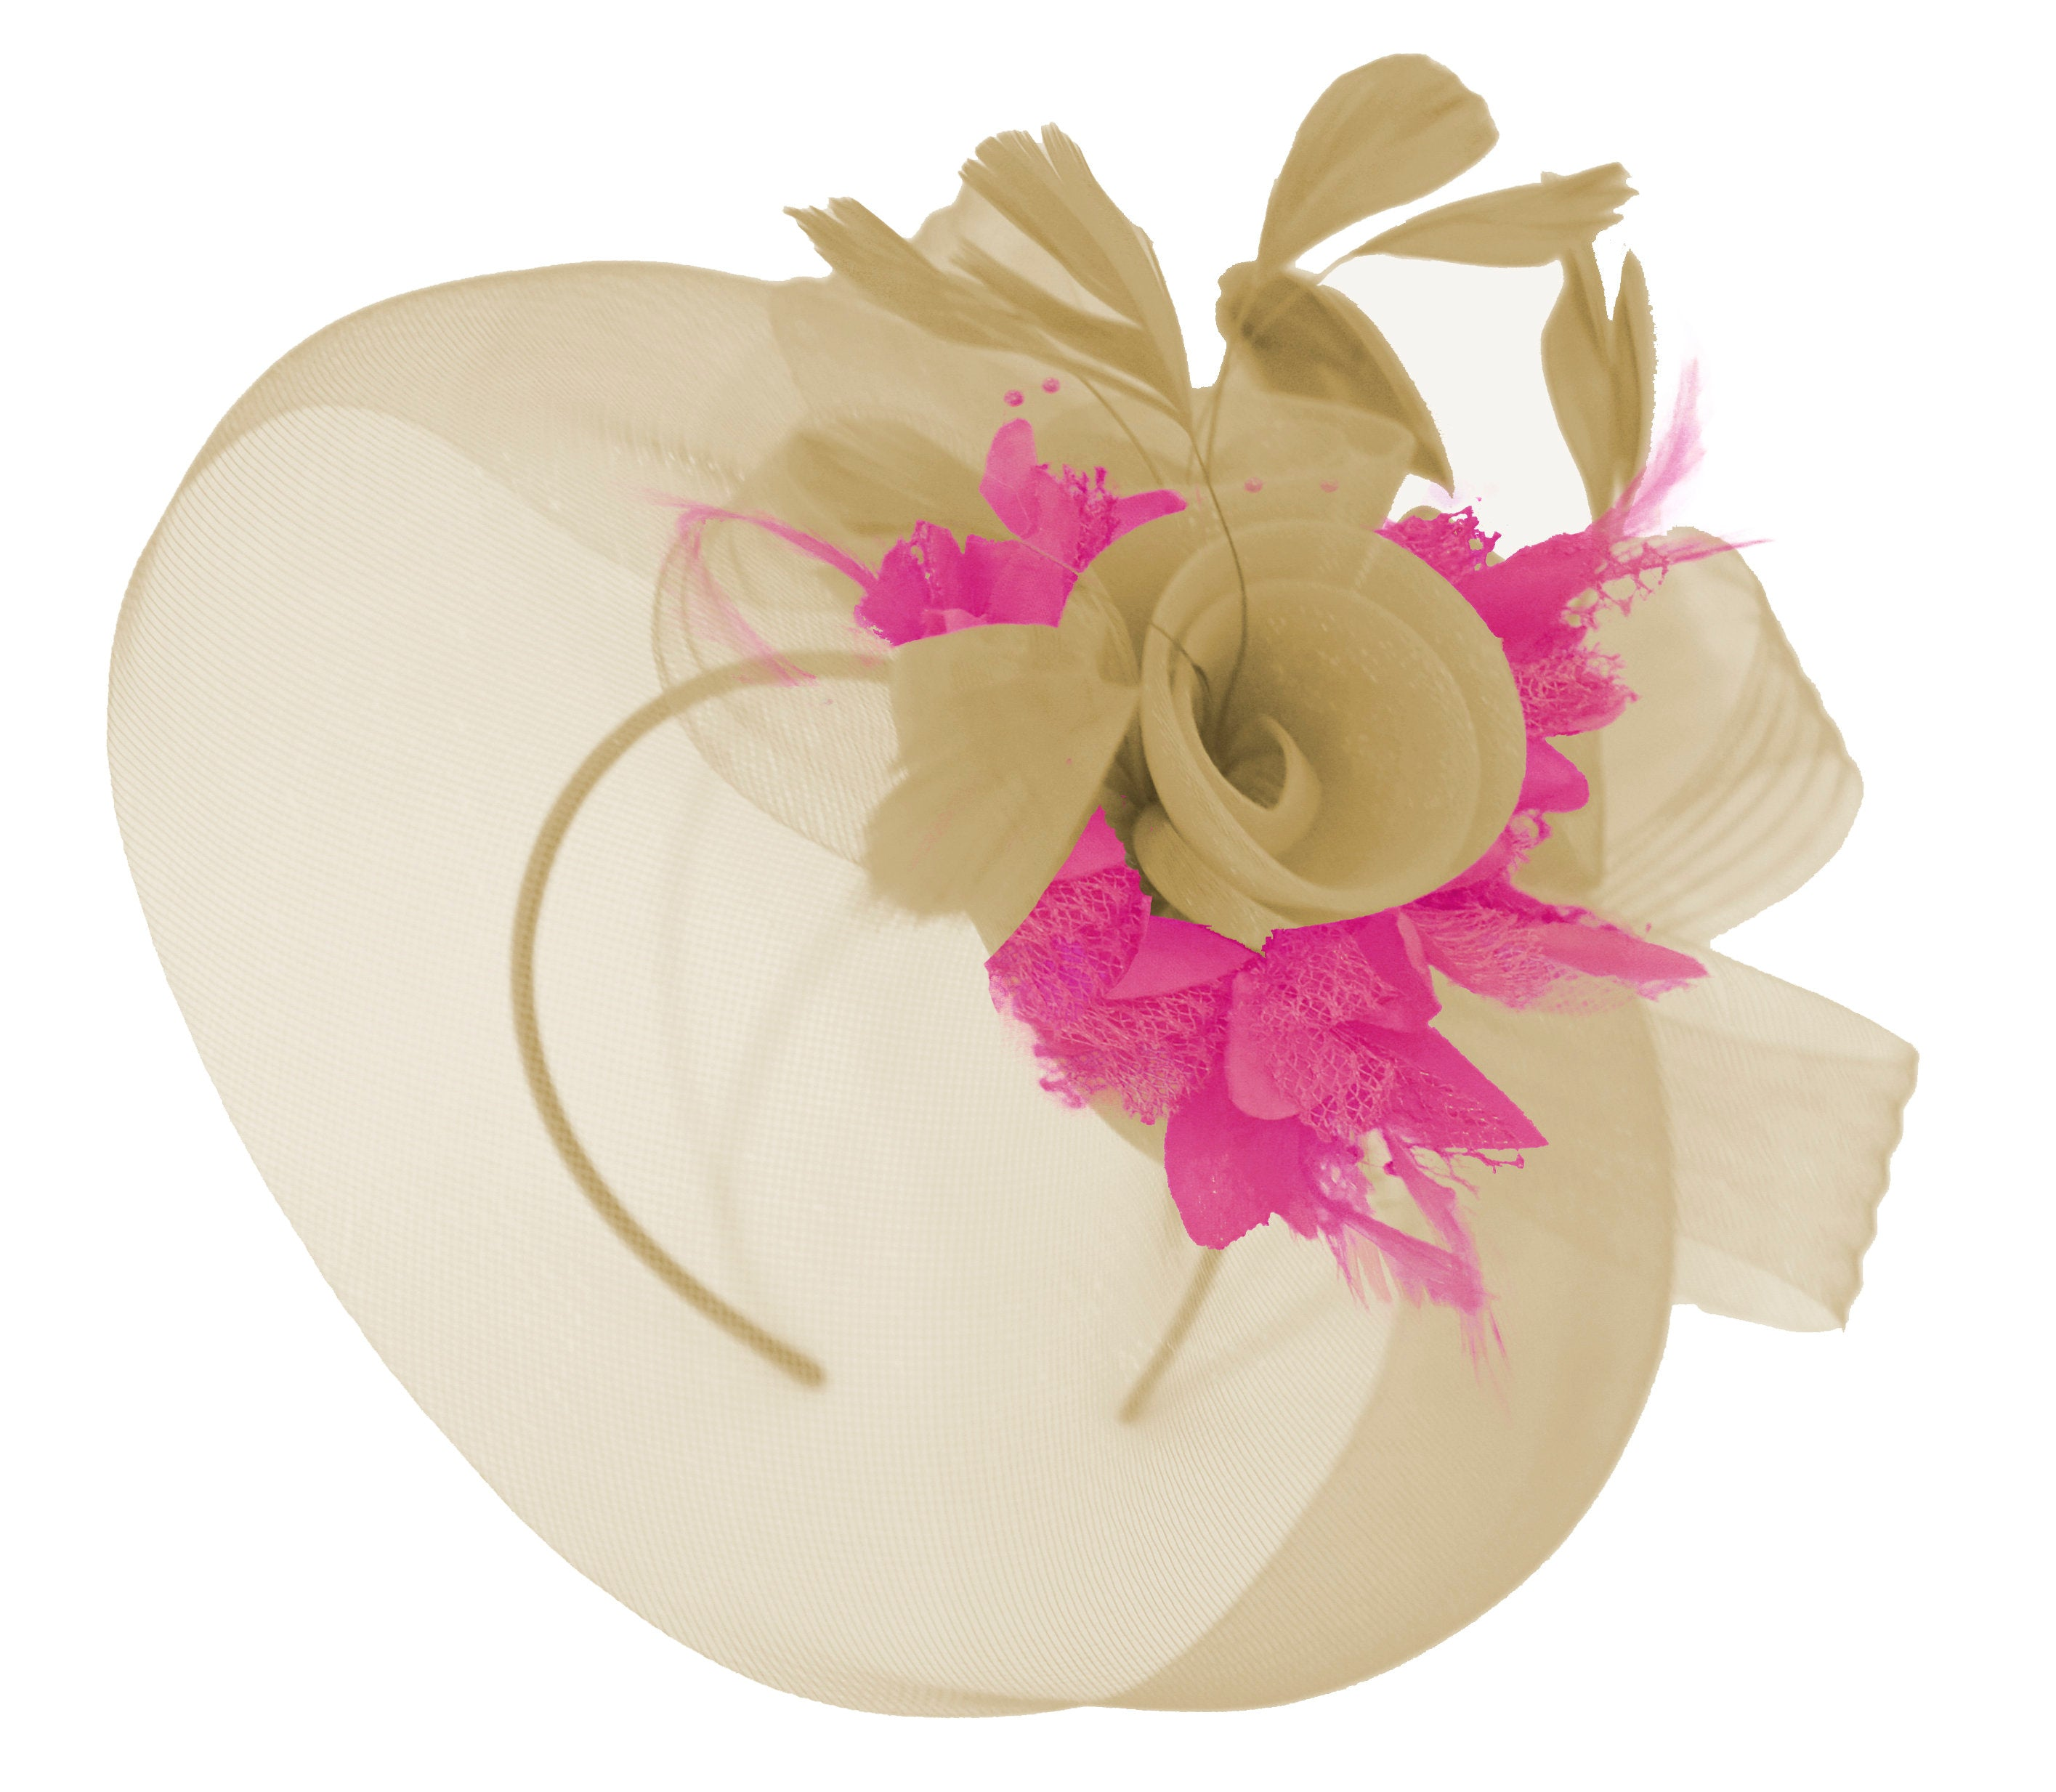 Caprilite Beige Camel and Fuchsia Fascinator Hat Veil Net Hair Clip Ascot Derby Races Wedding Headband Feather Flower